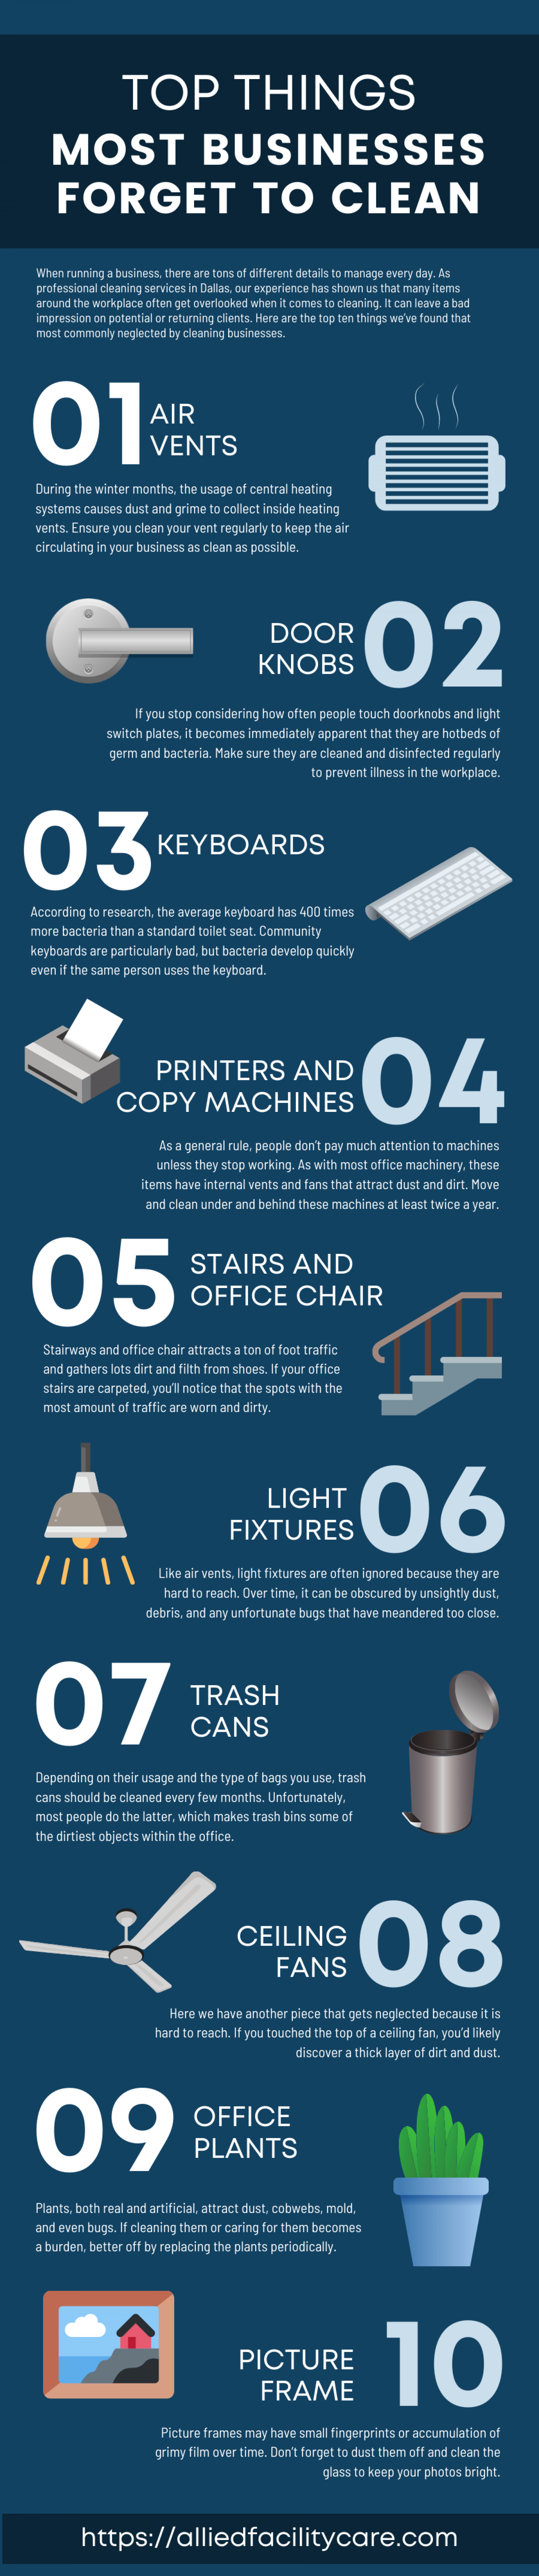 Top Things Most Businesses Forget to Clean Infographic